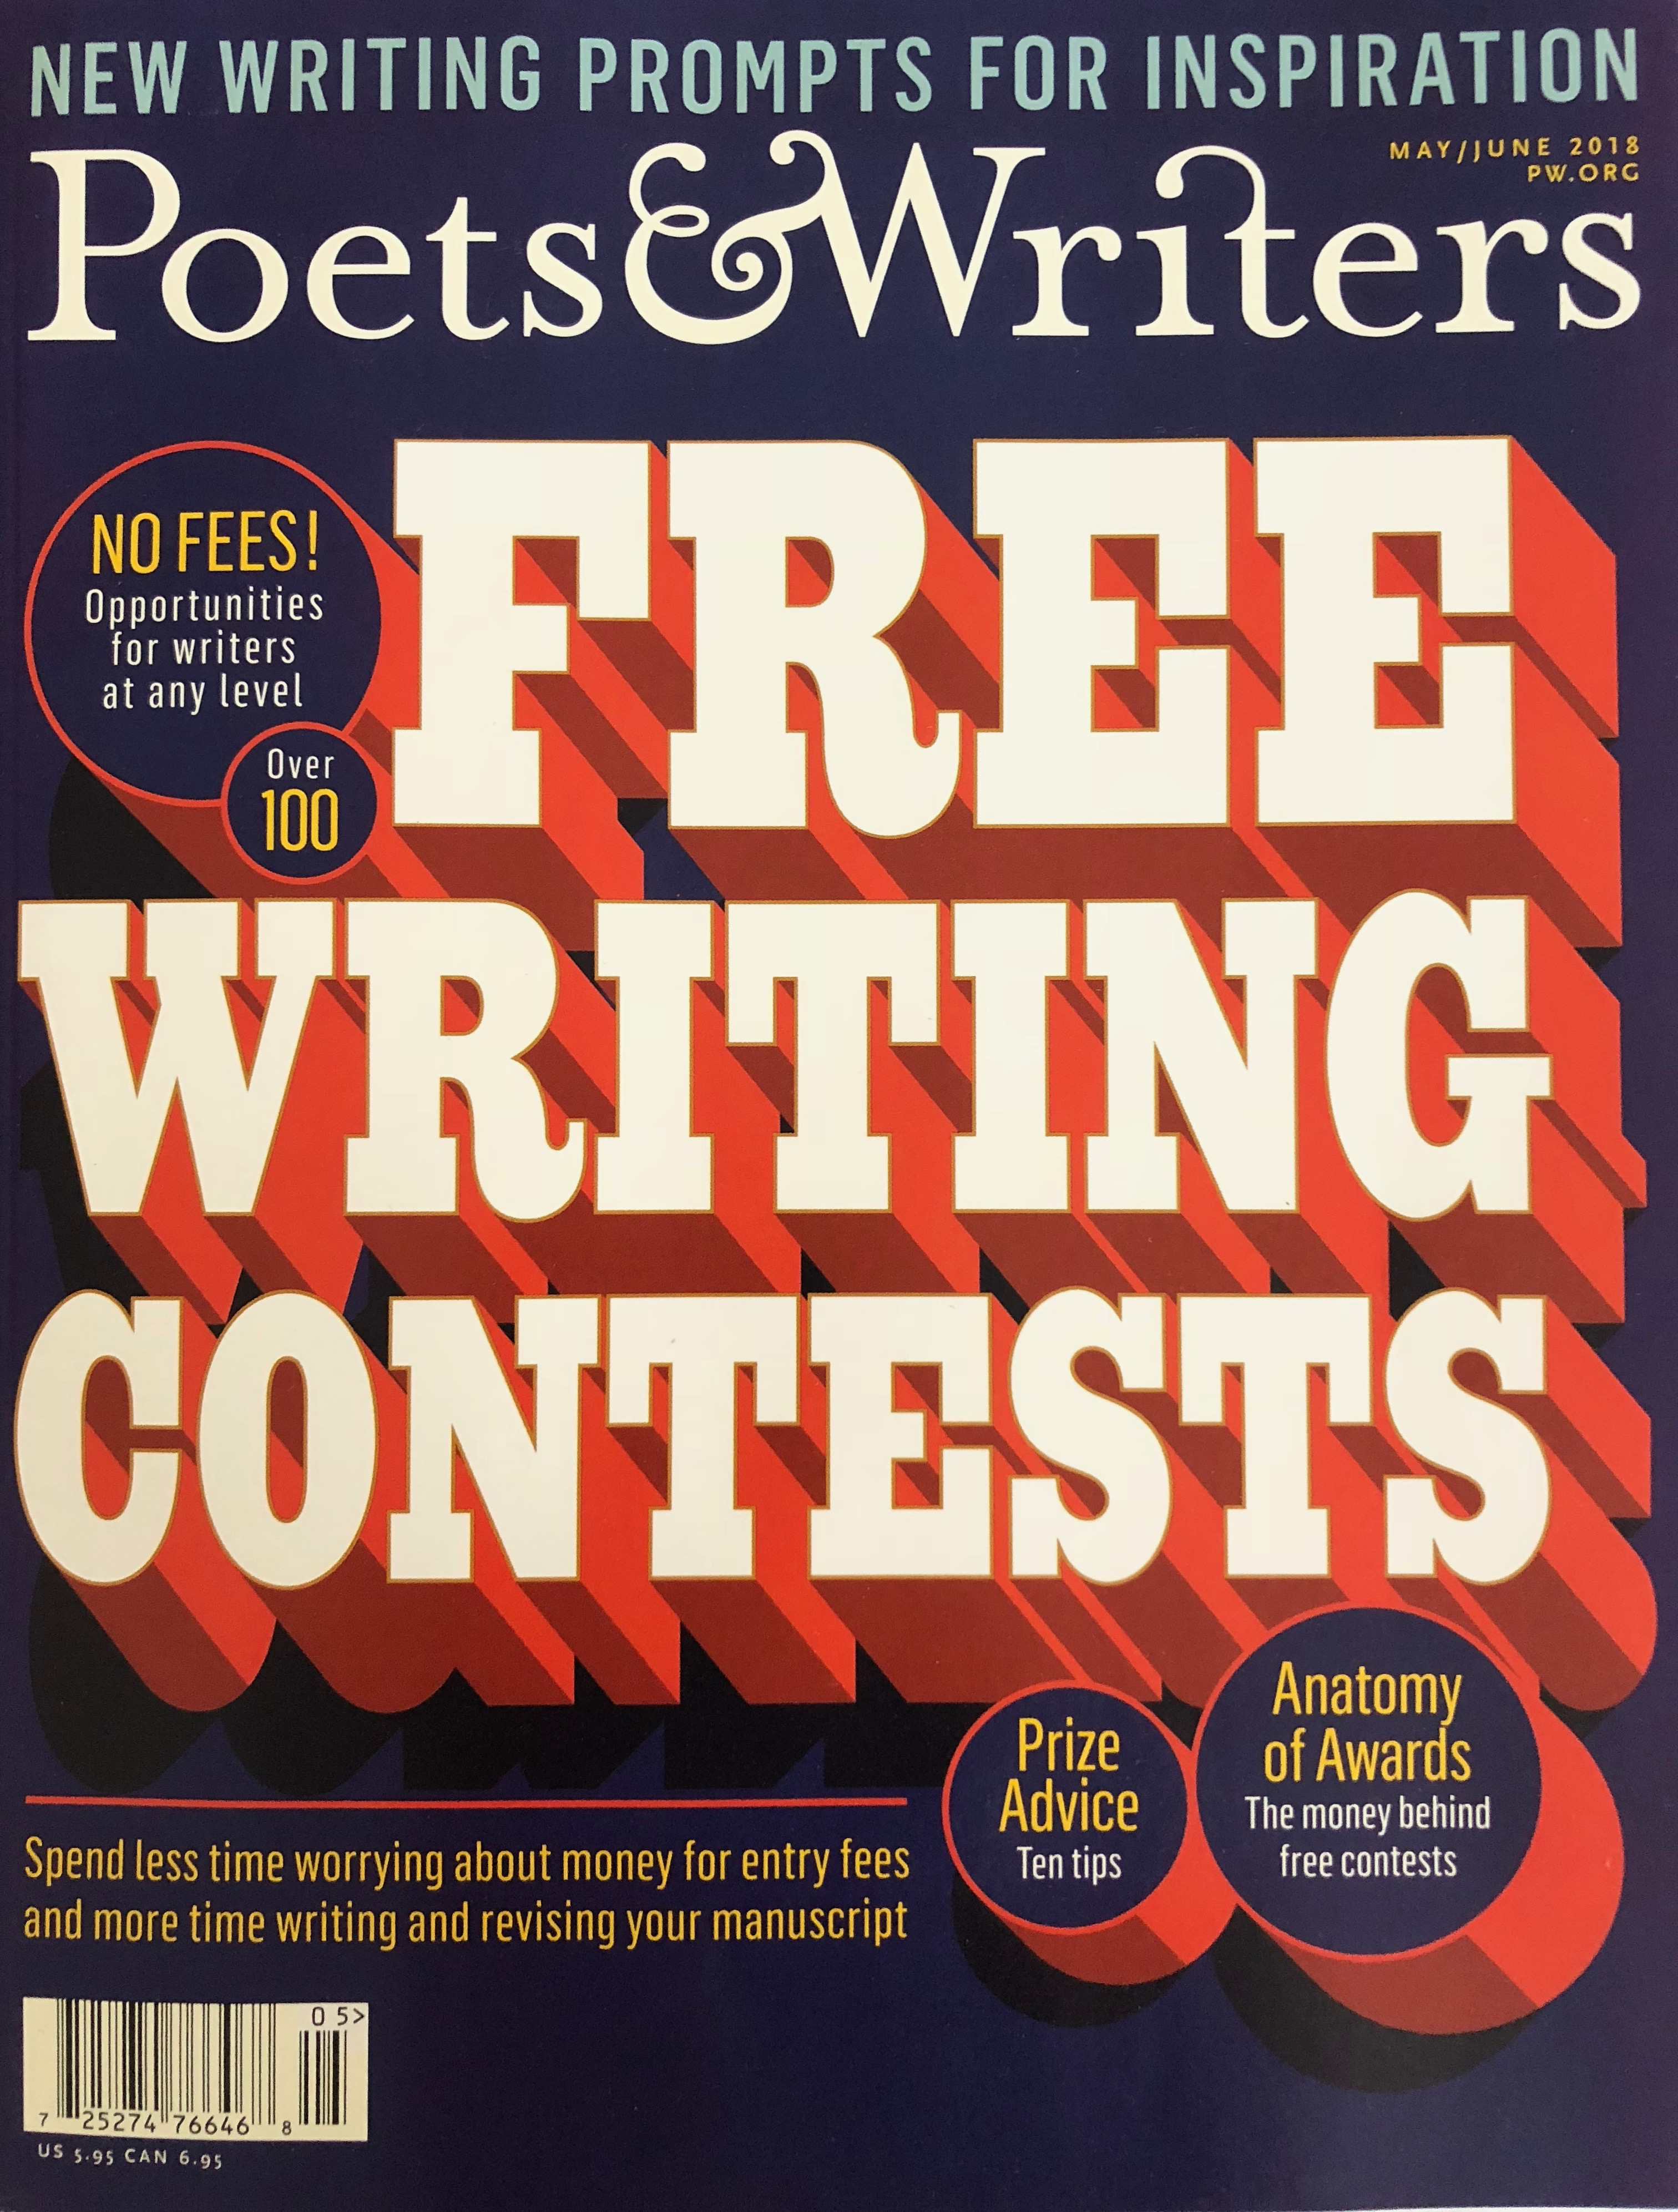 Submitting Your Writing to Literary Magazines and Contests